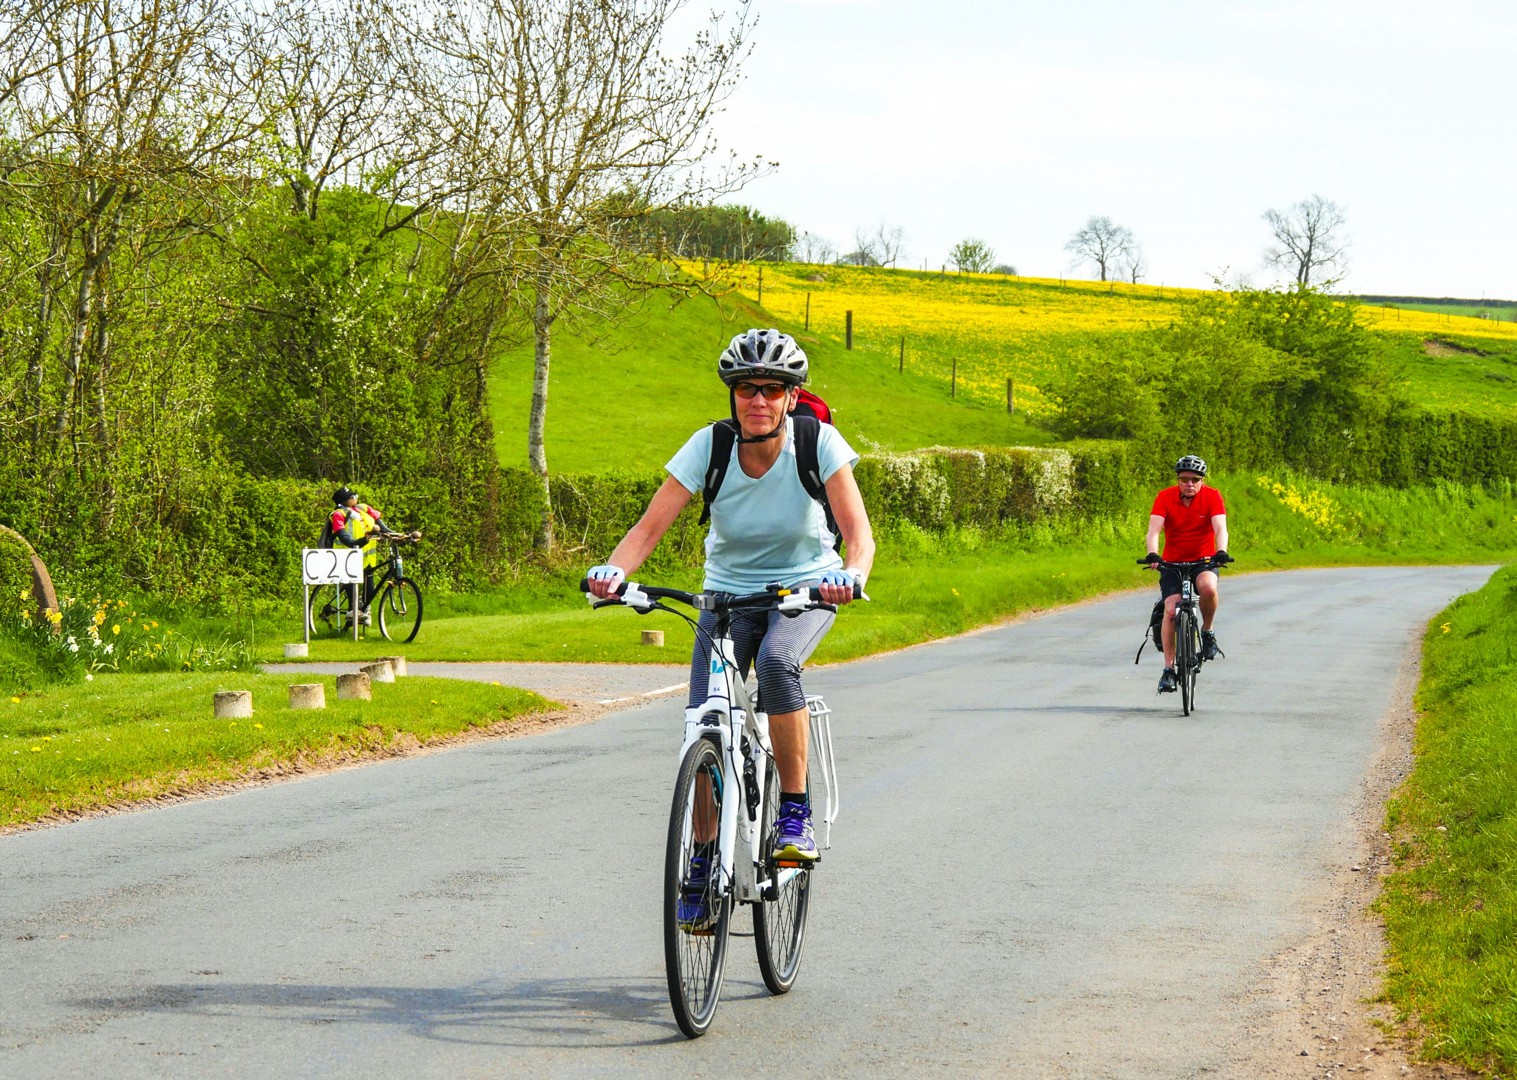 bike-friendly-accommodation-uk-coast-to-coast-route.jpg - UK - C2C - Coast to Coast - Supported Leisure Cycling Holiday - Leisure Cycling